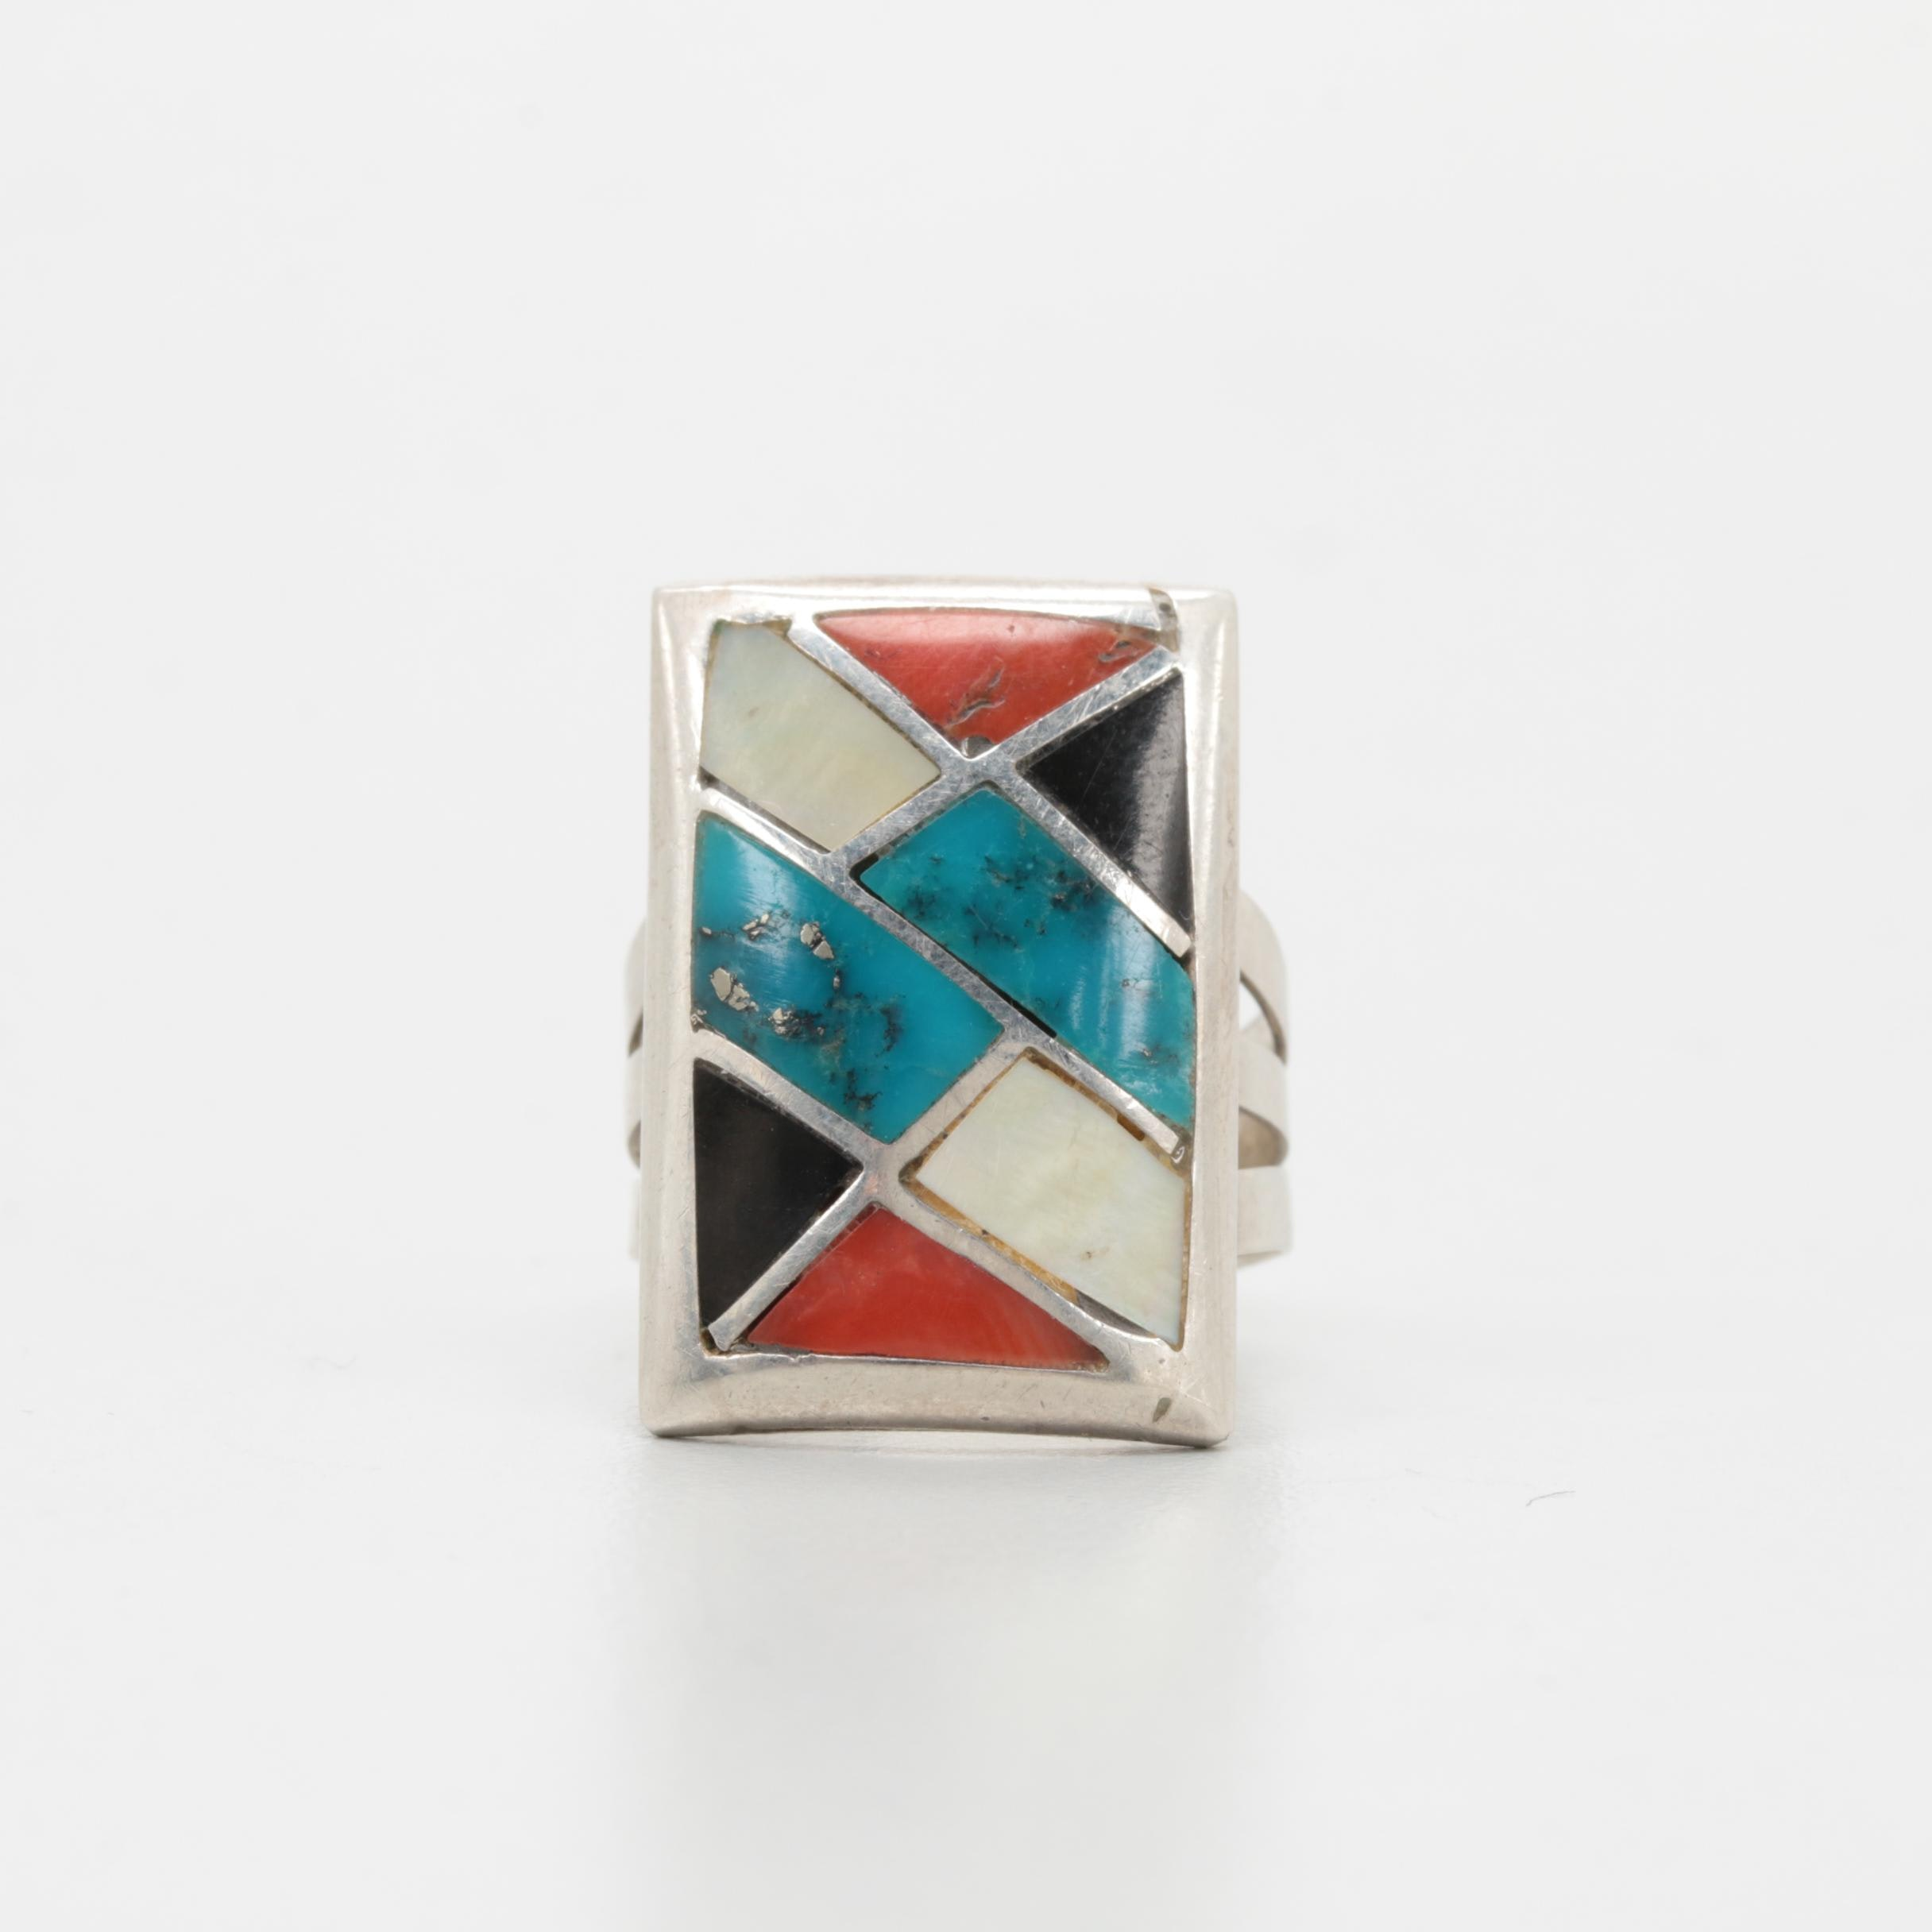 Benson Sam Navajo Diné Sterling Silver Turquoise and Gemstone Inlaid Ring